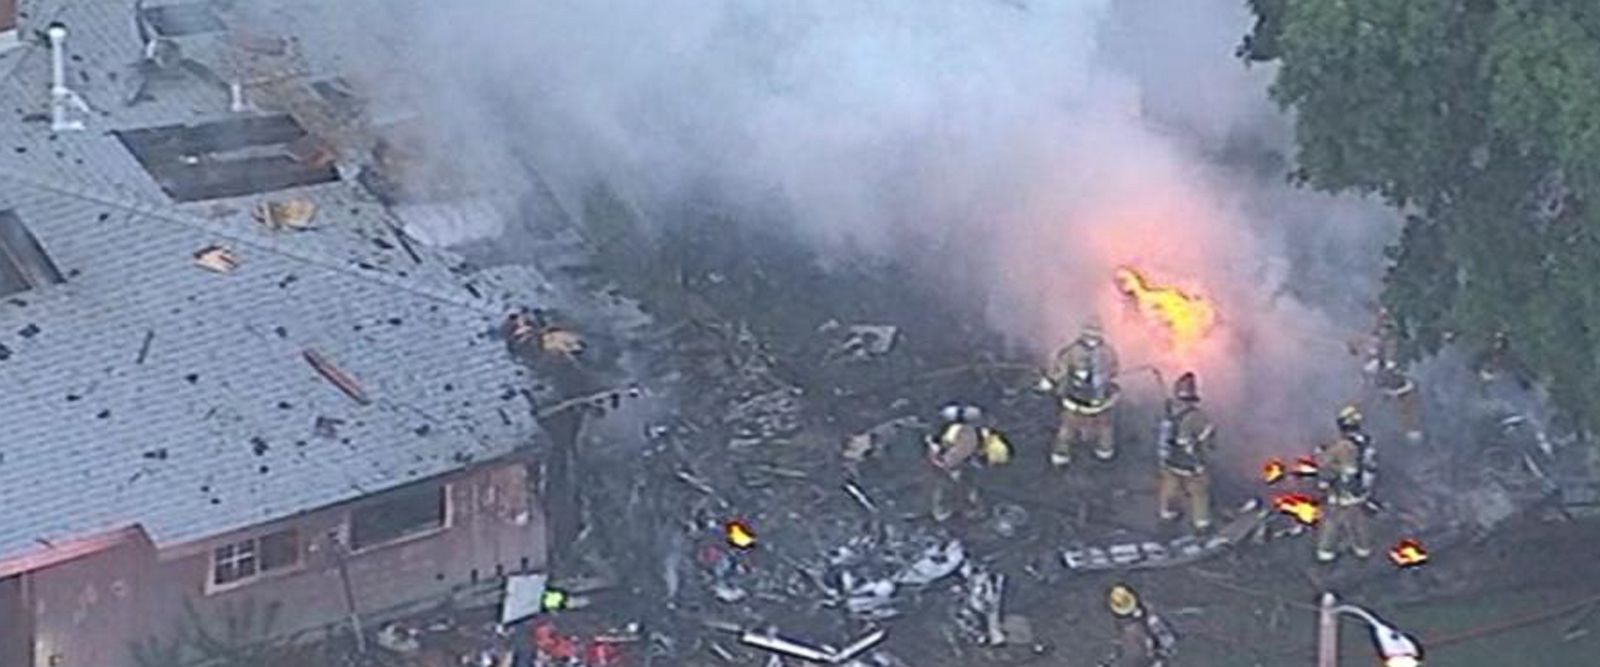 VIDEO: At least 3 dead after small plane crashes into California homes